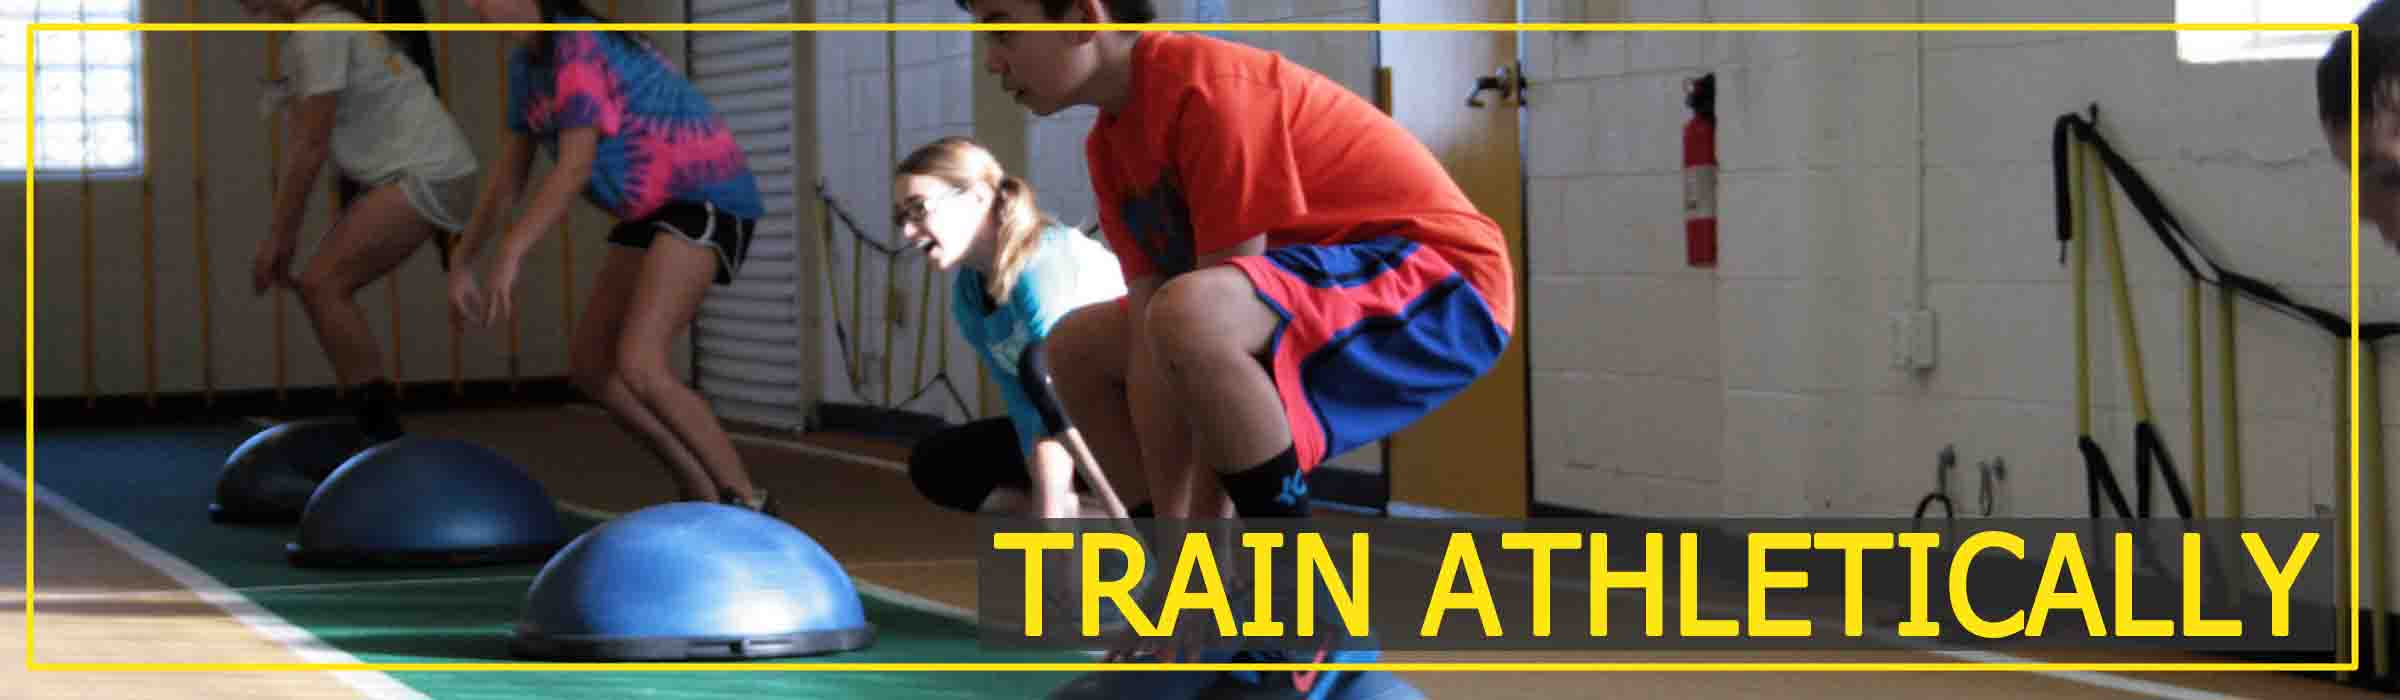 F.A.S.S.T. Program class BOSU Workout for train athletically